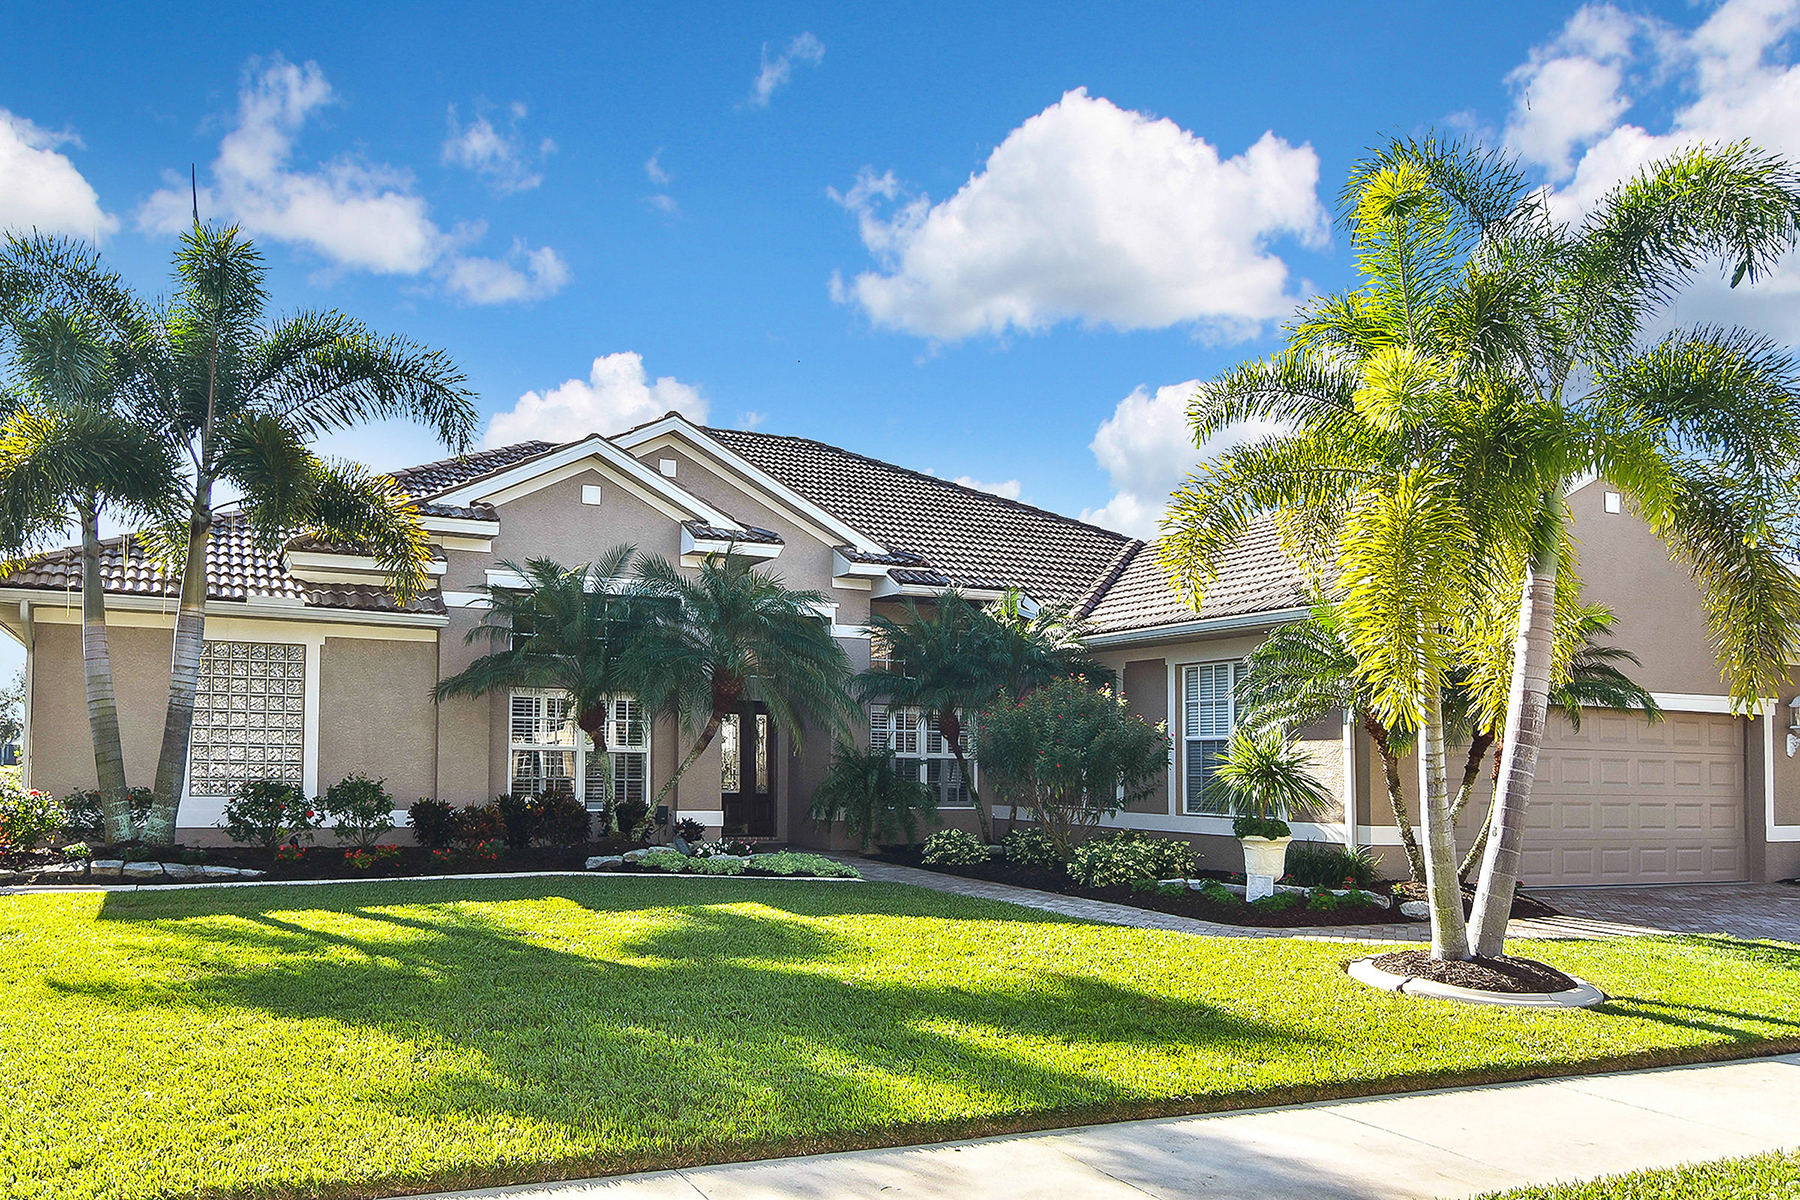 Single Family Homes for Sale at SAWGRASS 544 Marsh Creek Rd Venice, Florida 34292 United States